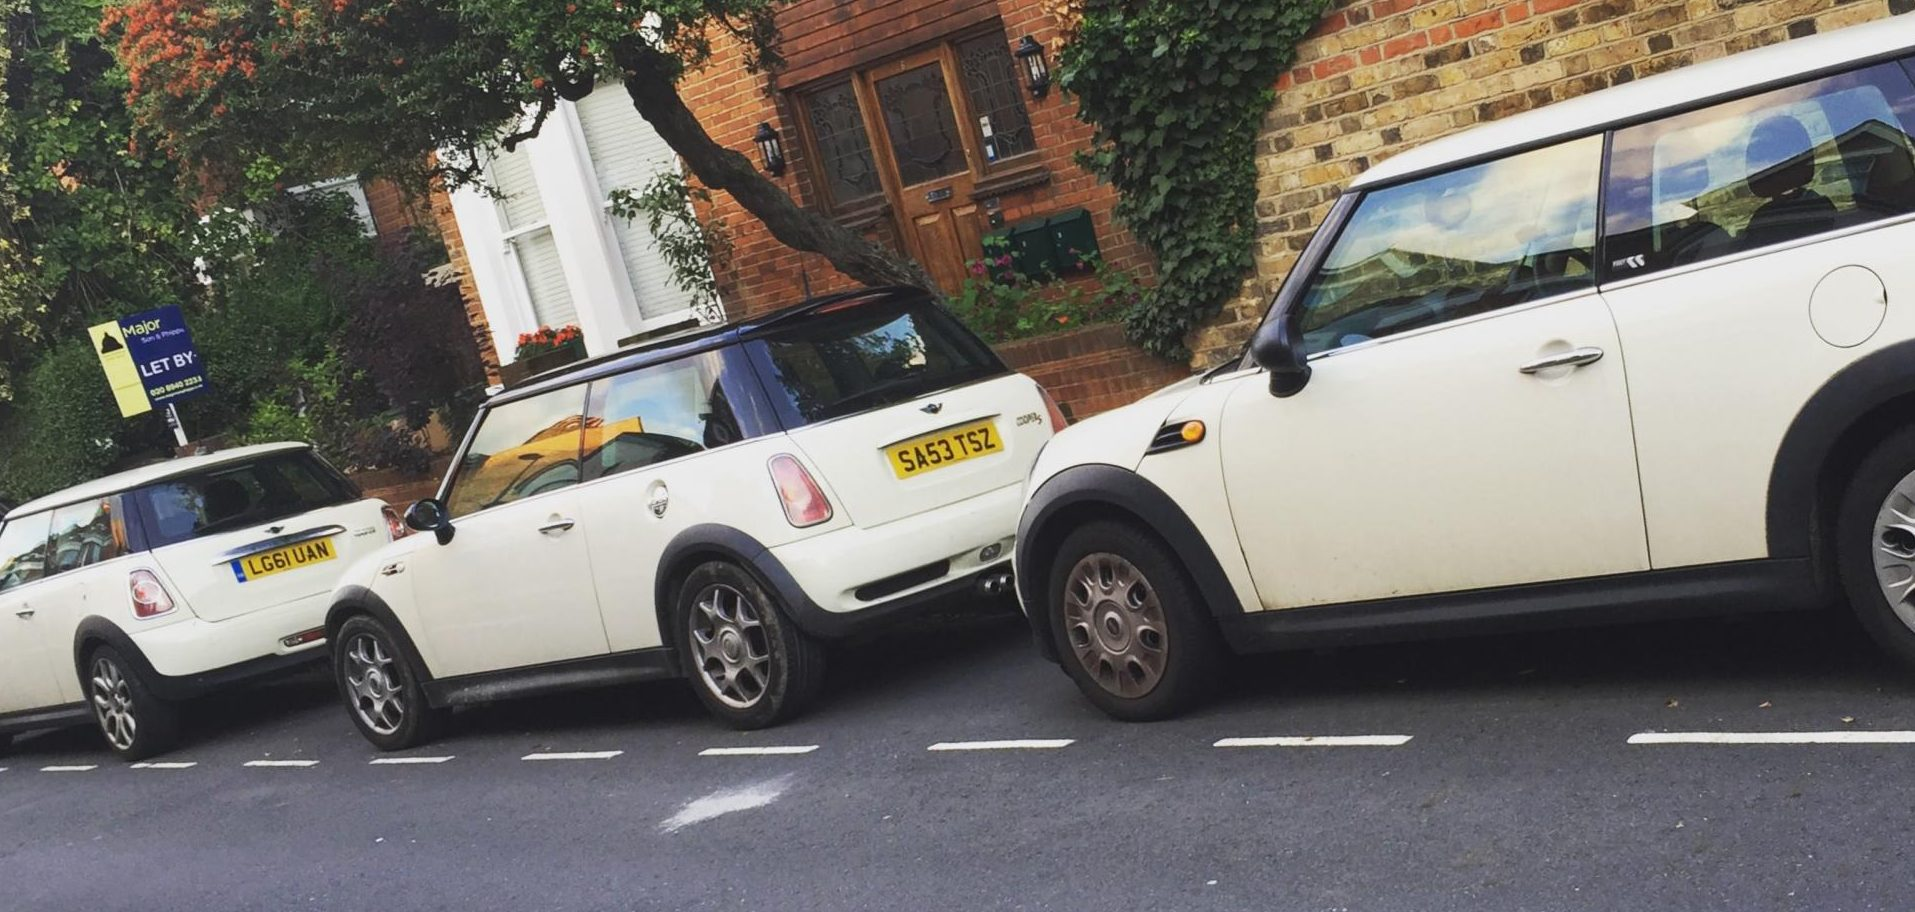 Three cream Mini Coopers in a row